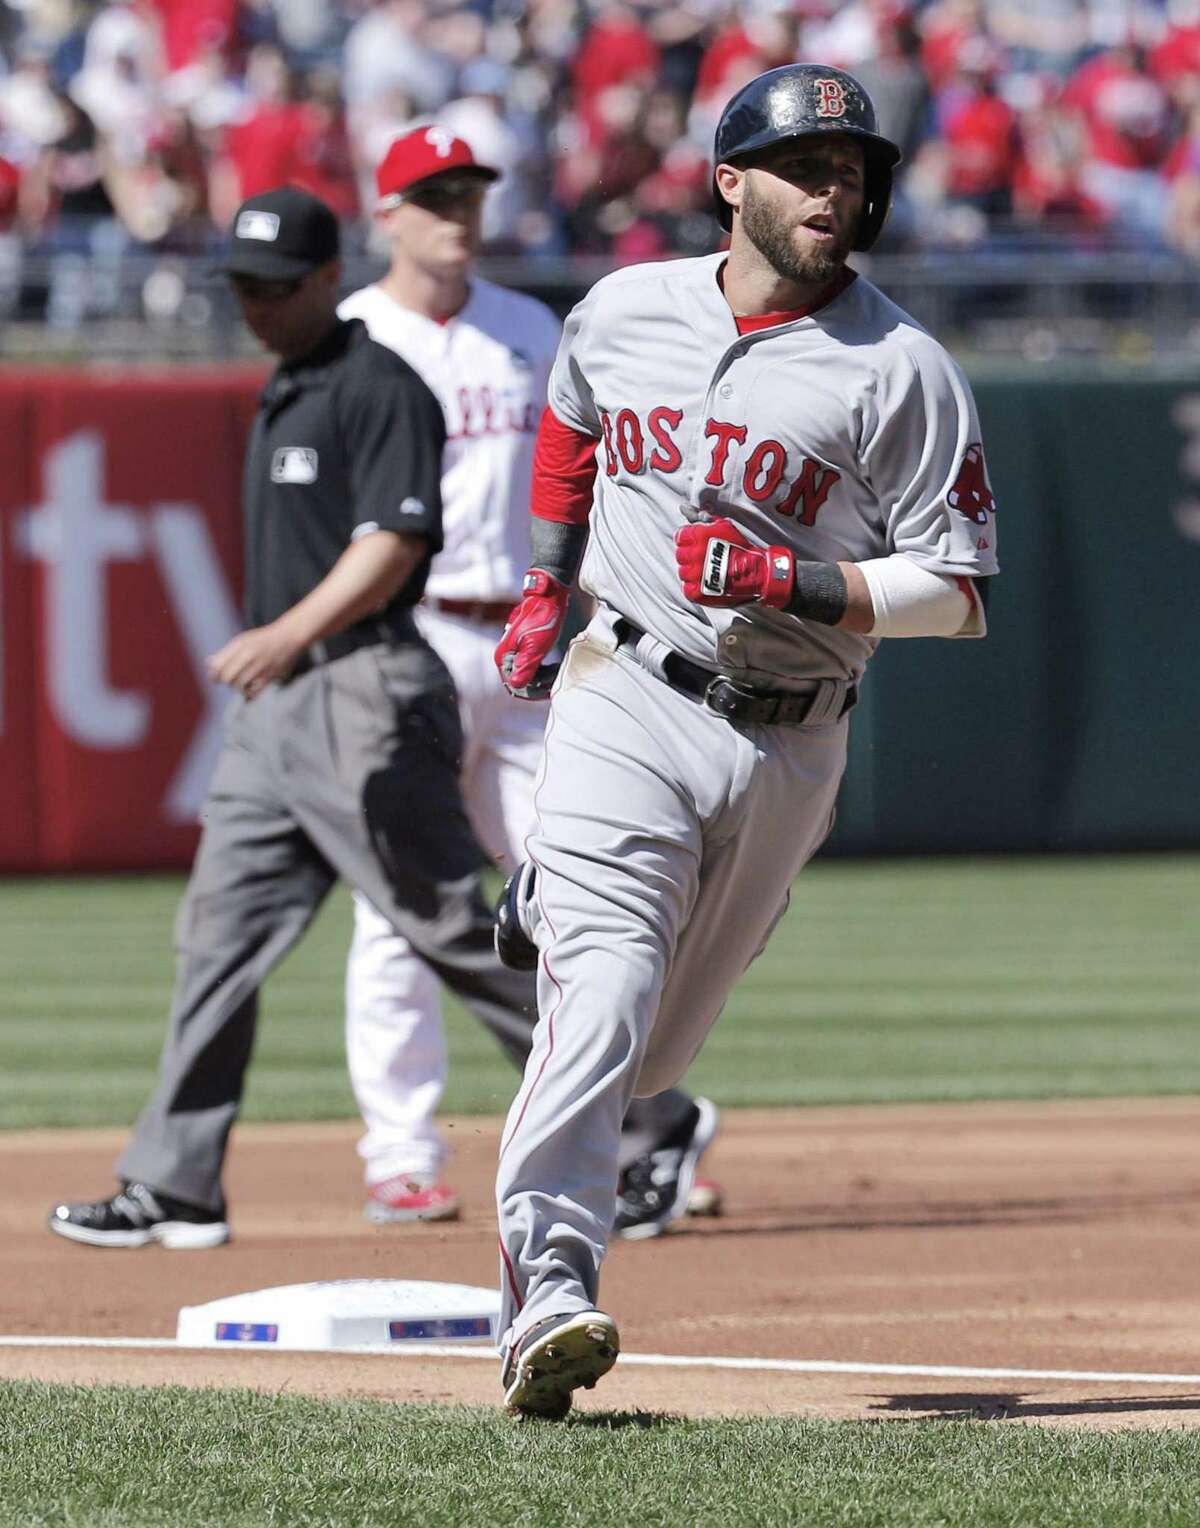 Boston Red Sox Dustin Pedroia rounds third base after hitting a solo home run during the first inning.